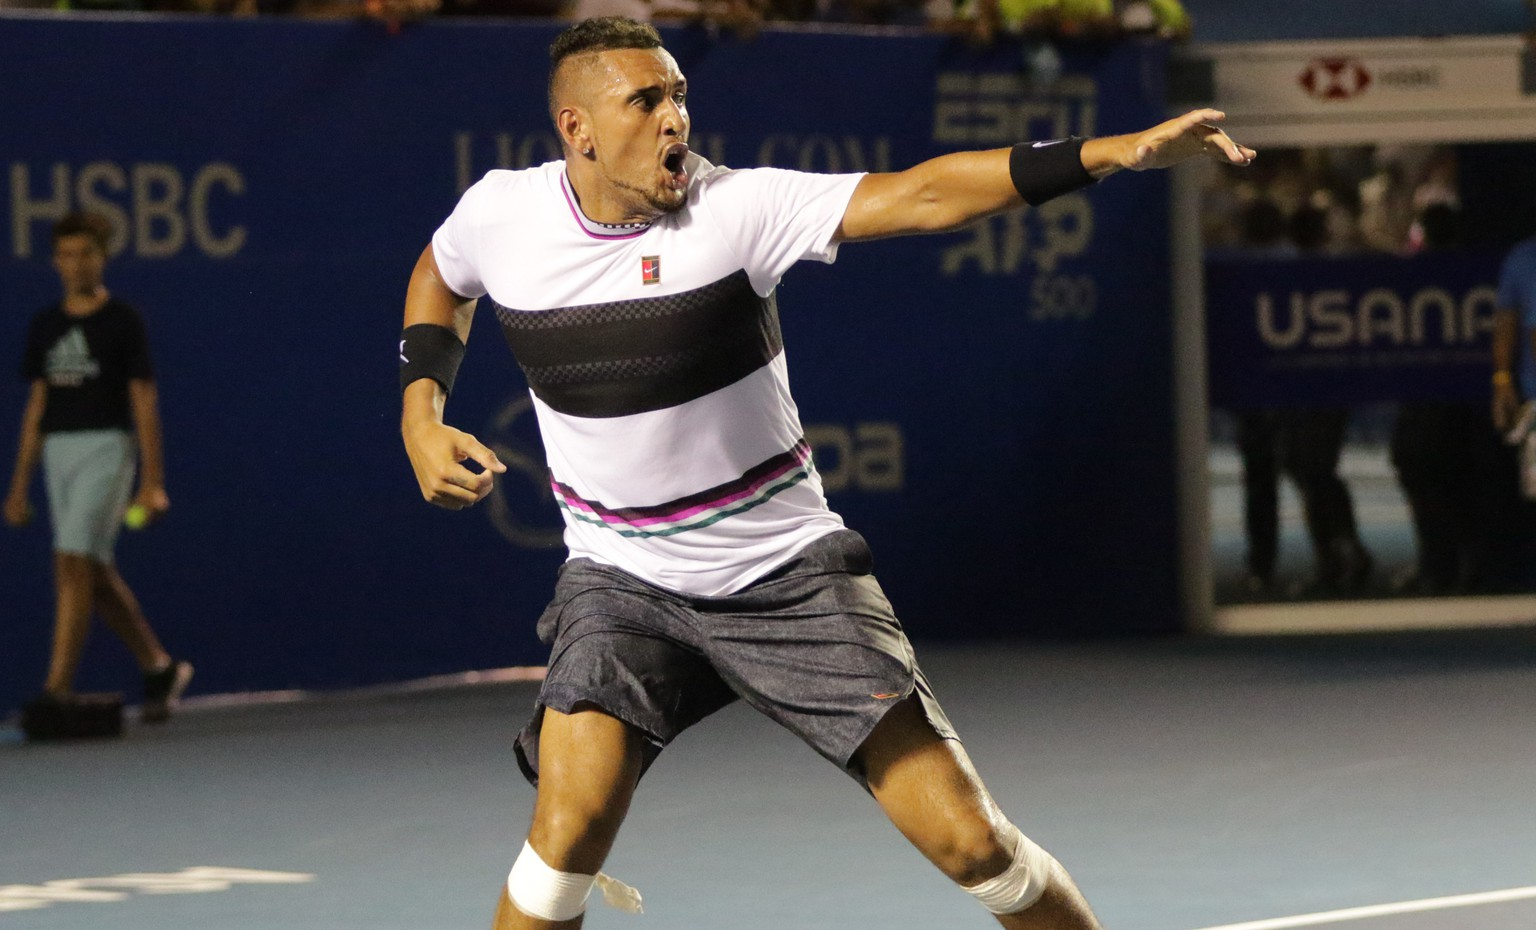 epa07403070 Nick Kyrgios of Australia celebrates his win against Rafael Nadal of Spain in their Mexico Tennis Open round of 16 match held in Acapulco, Mexico, 27 February 2019.  EPA/David Guzman